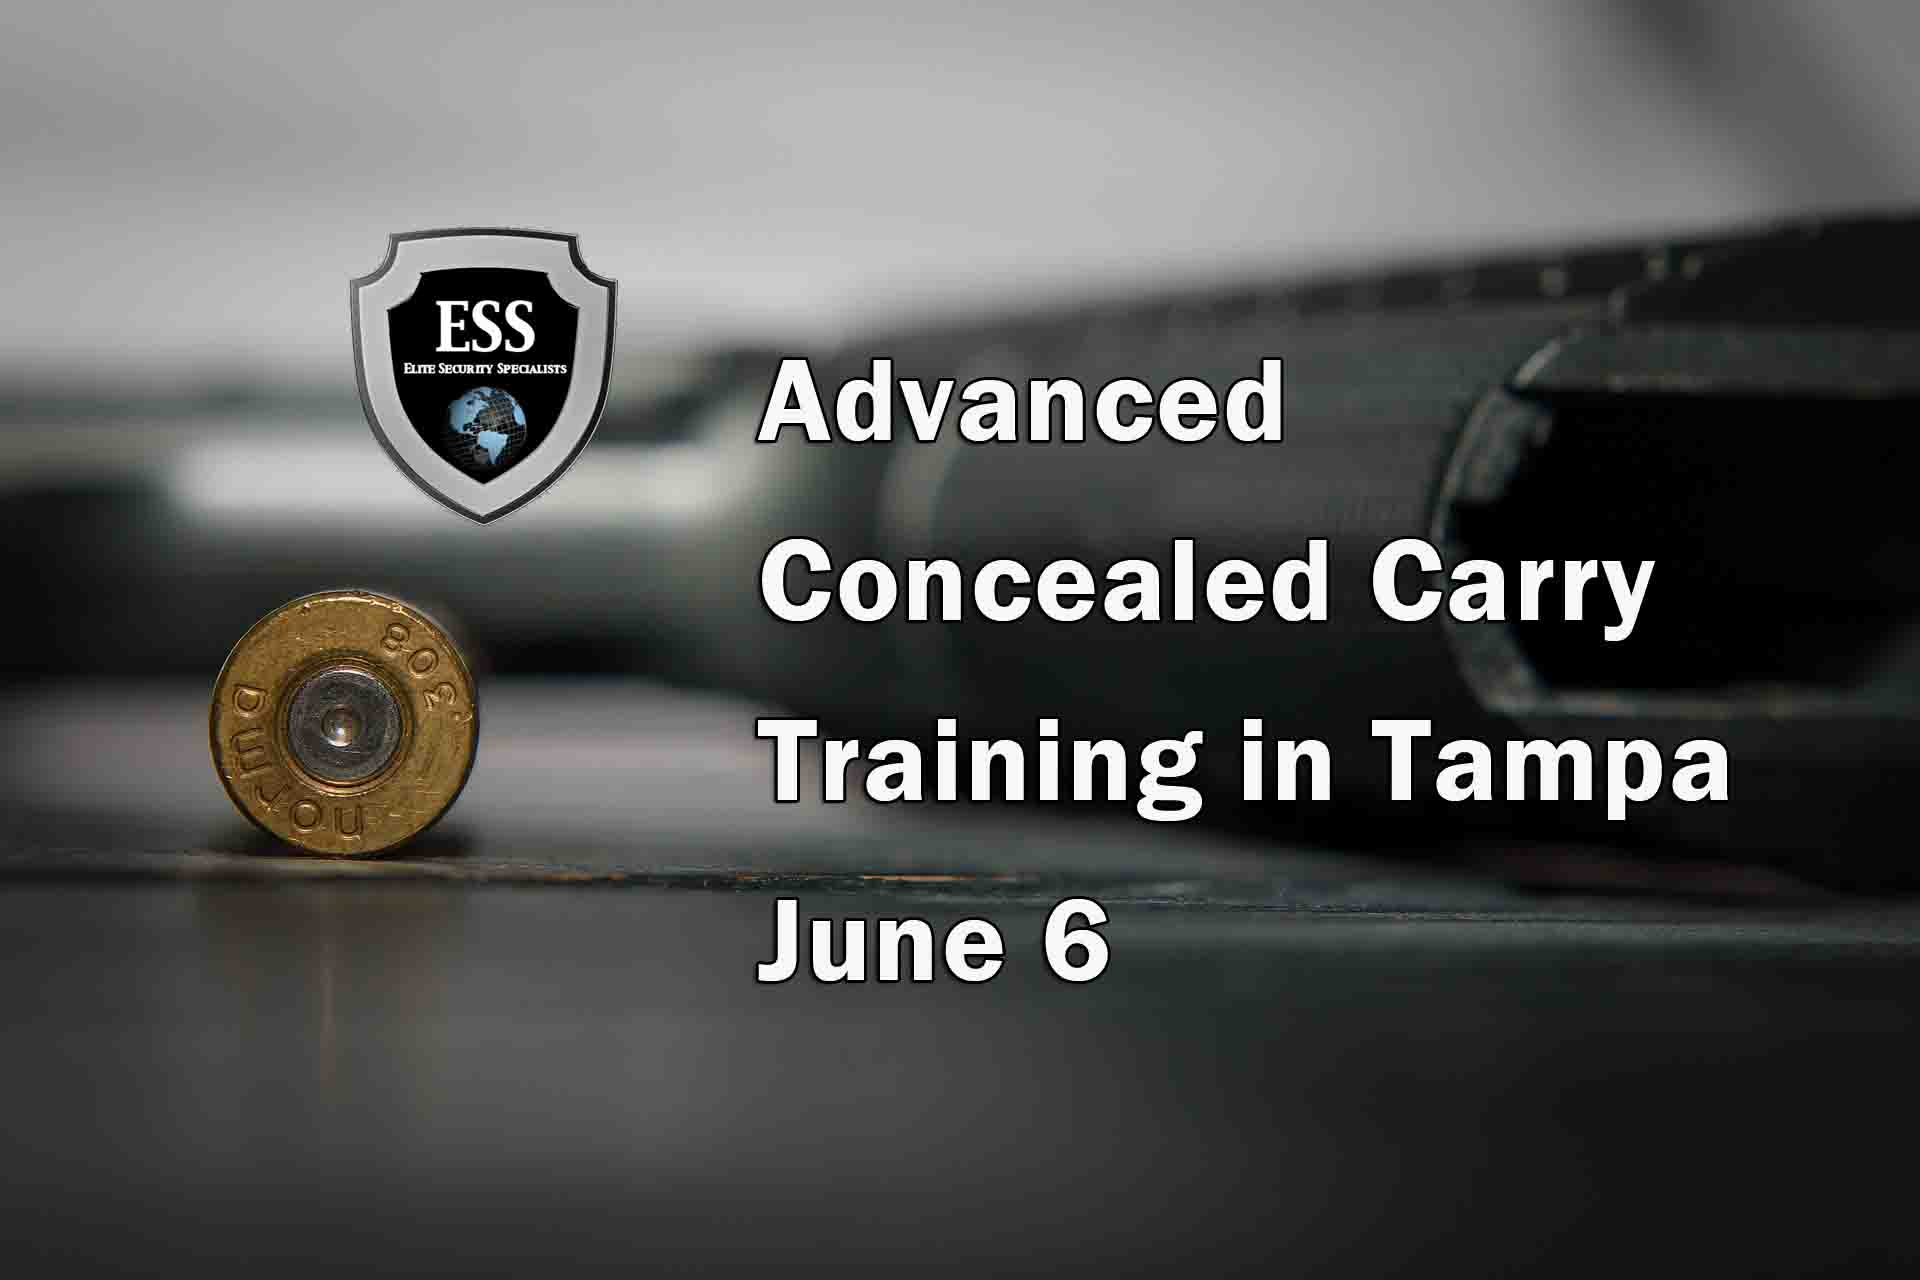 Advanced Concealed Carry Training in Tampa JUNE